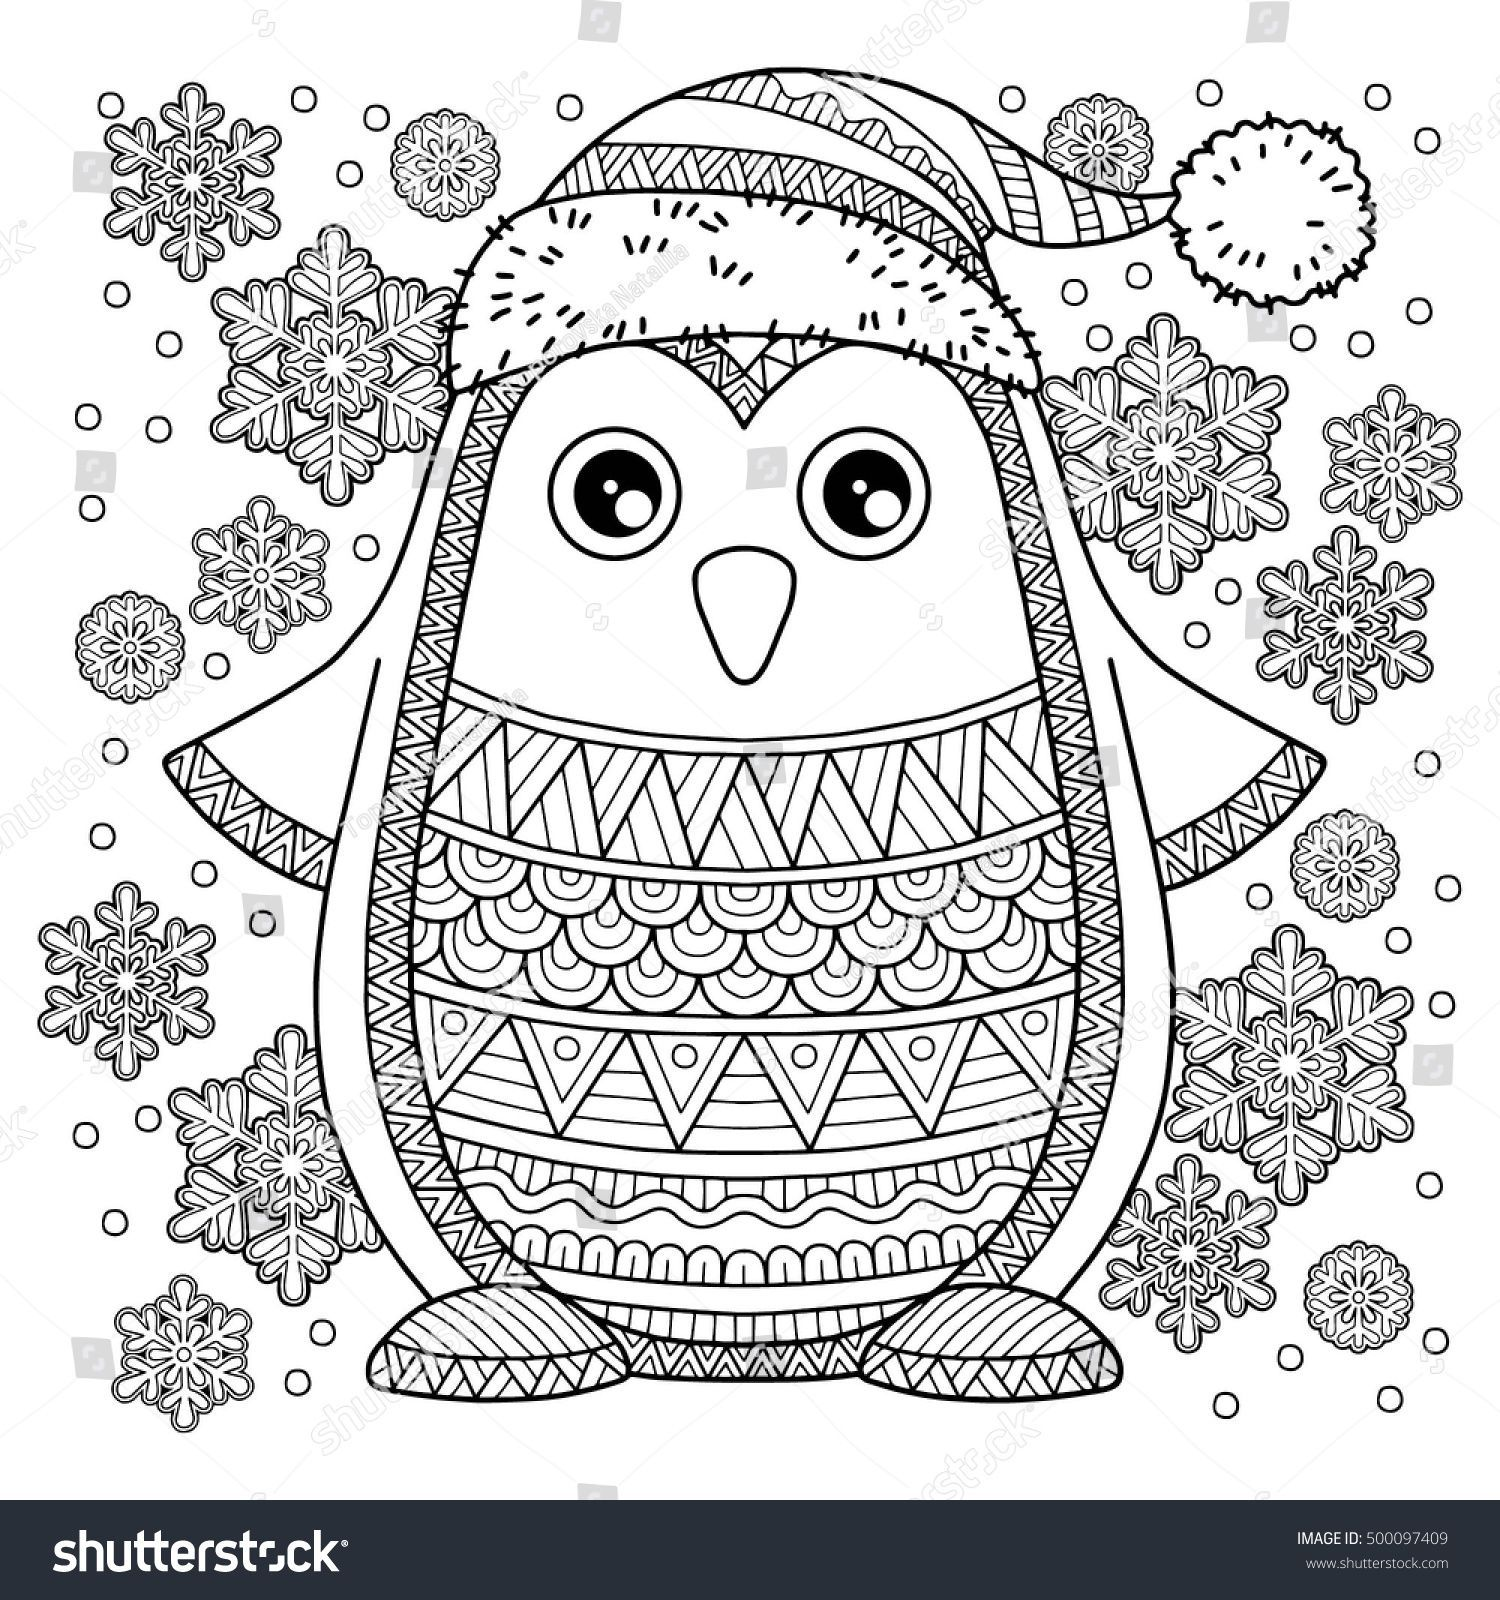 6200 Christmas Coloring Pages Detailed For Free Kleurplaten Dieren Kleurplaten Mandala Kleurplaten